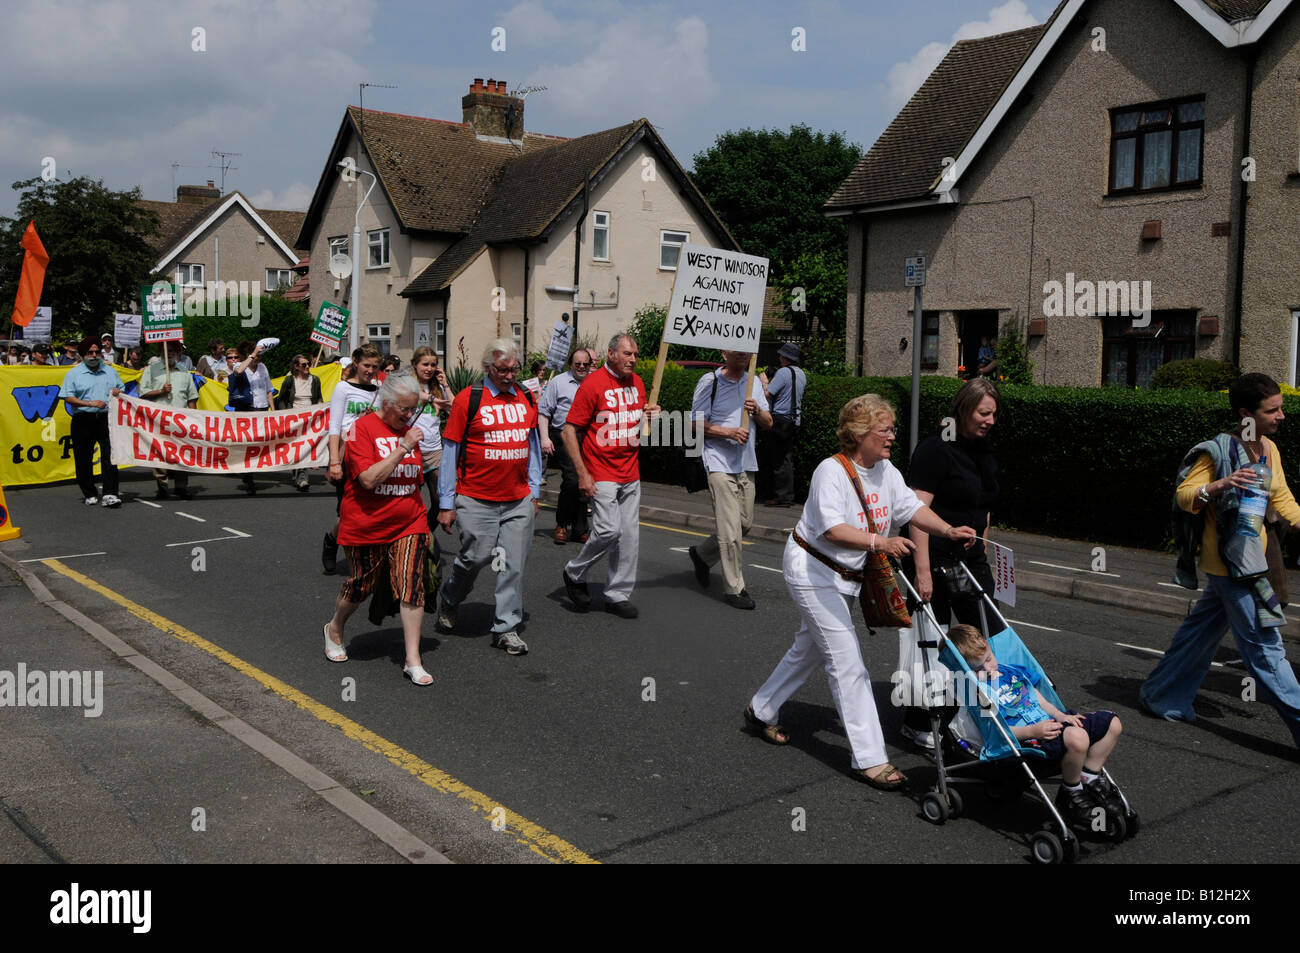 http://c8.alamy.com/comp/B12H2X/sipson-village-next-to-heathrow-airport-no-third-runway-protest-protesters-B12H2X.jpg